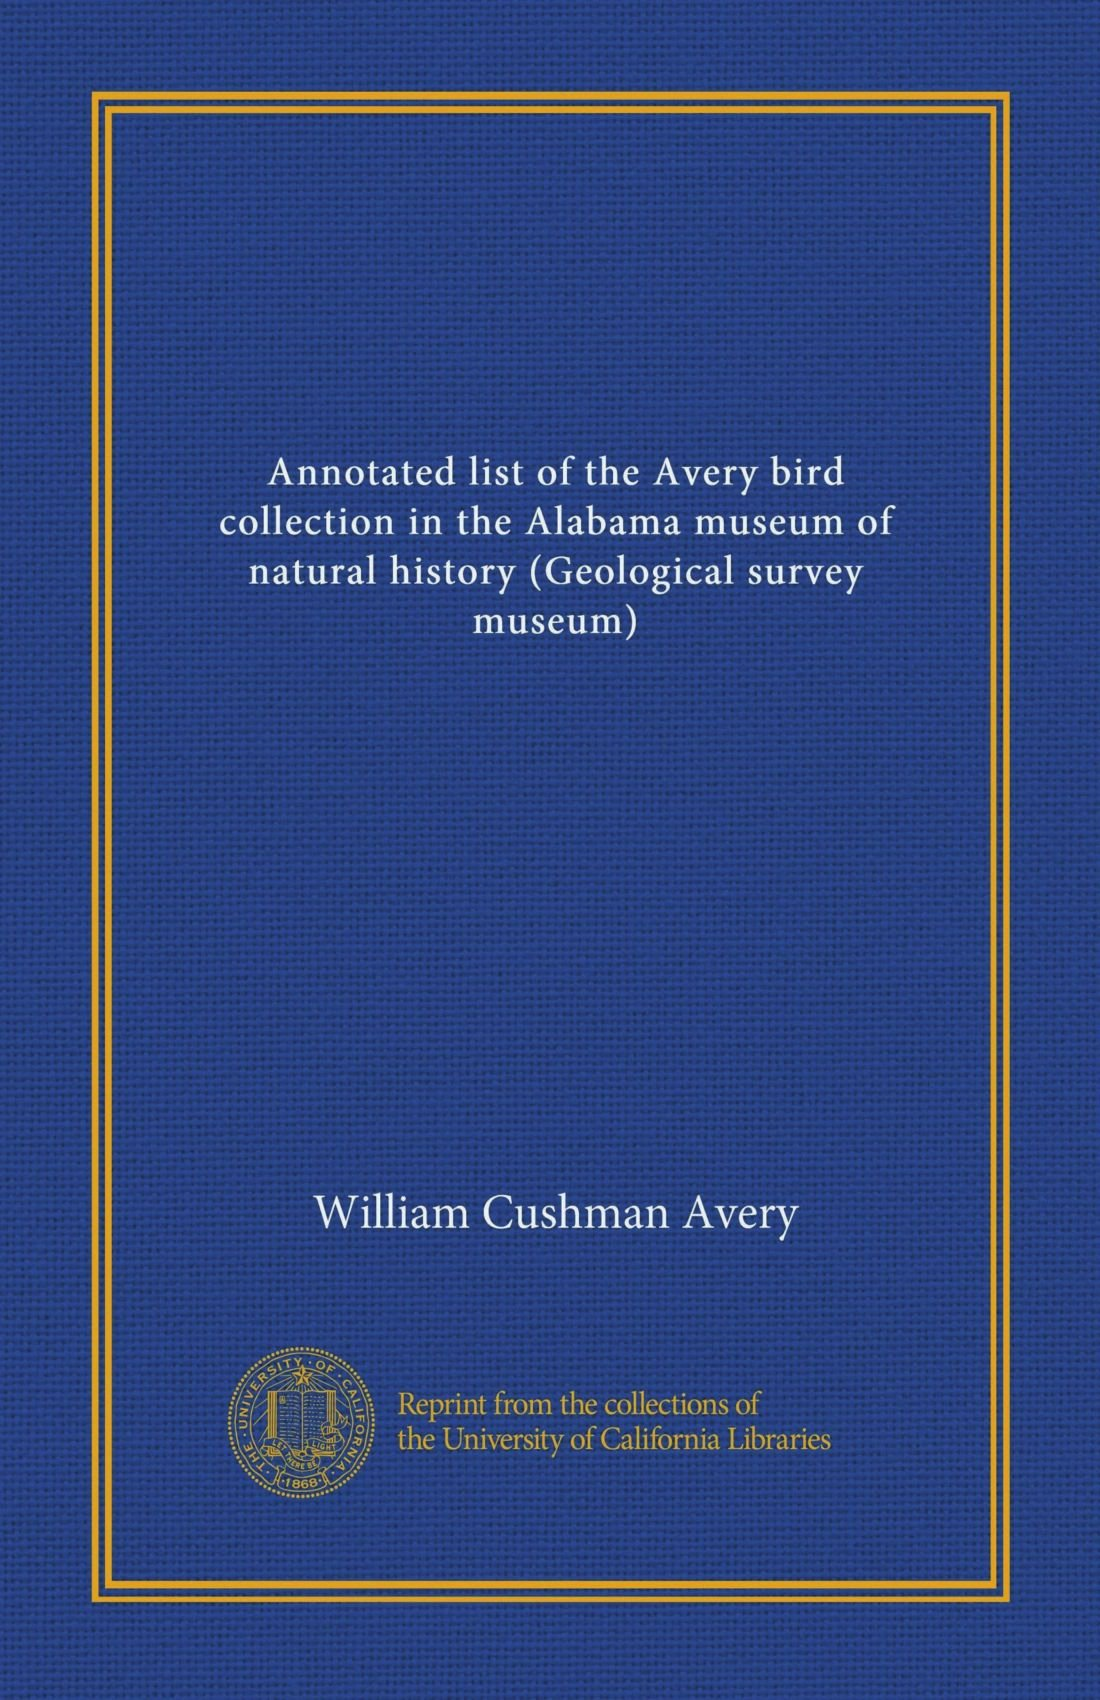 Download Annotated list of the Avery bird collection in the Alabama museum of natural history (Geological survey museum) ebook